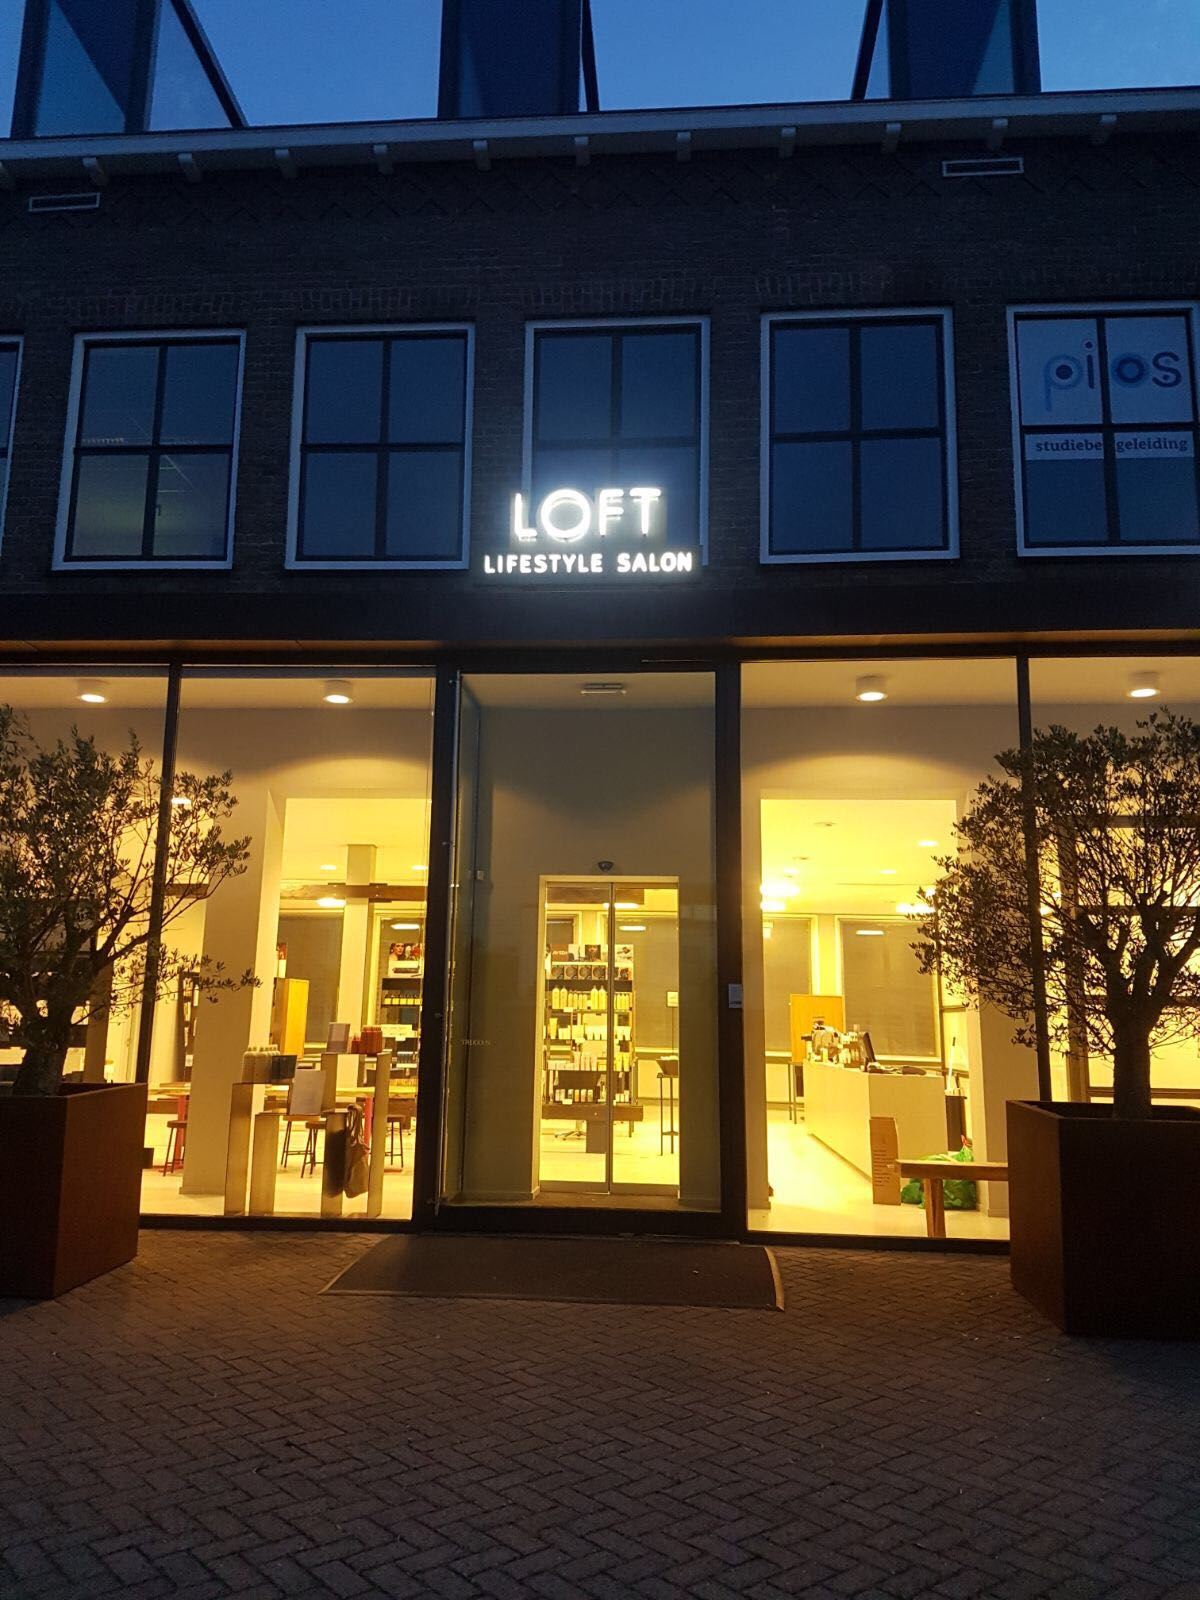 Kapper Bussum - Kapsalon Loft Lifestyle Salon